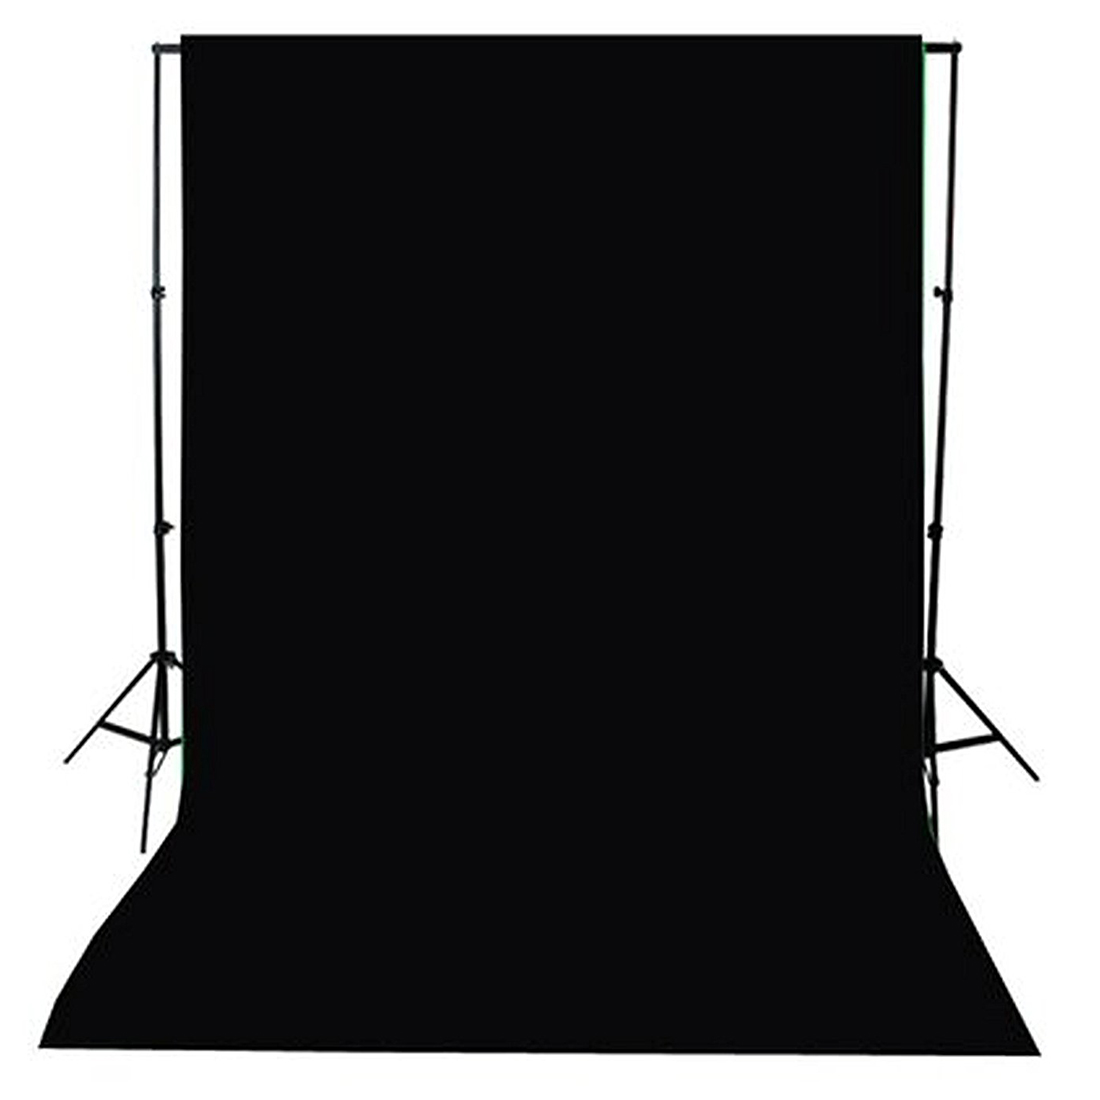 3x5ft Photography Backdrop Background Photo Stand Cotton Non-woven Studio Photoprop supon 6 color options screen chroma key 3 x 5m background backdrop cloth for studio photo lighting non woven fabrics backdrop